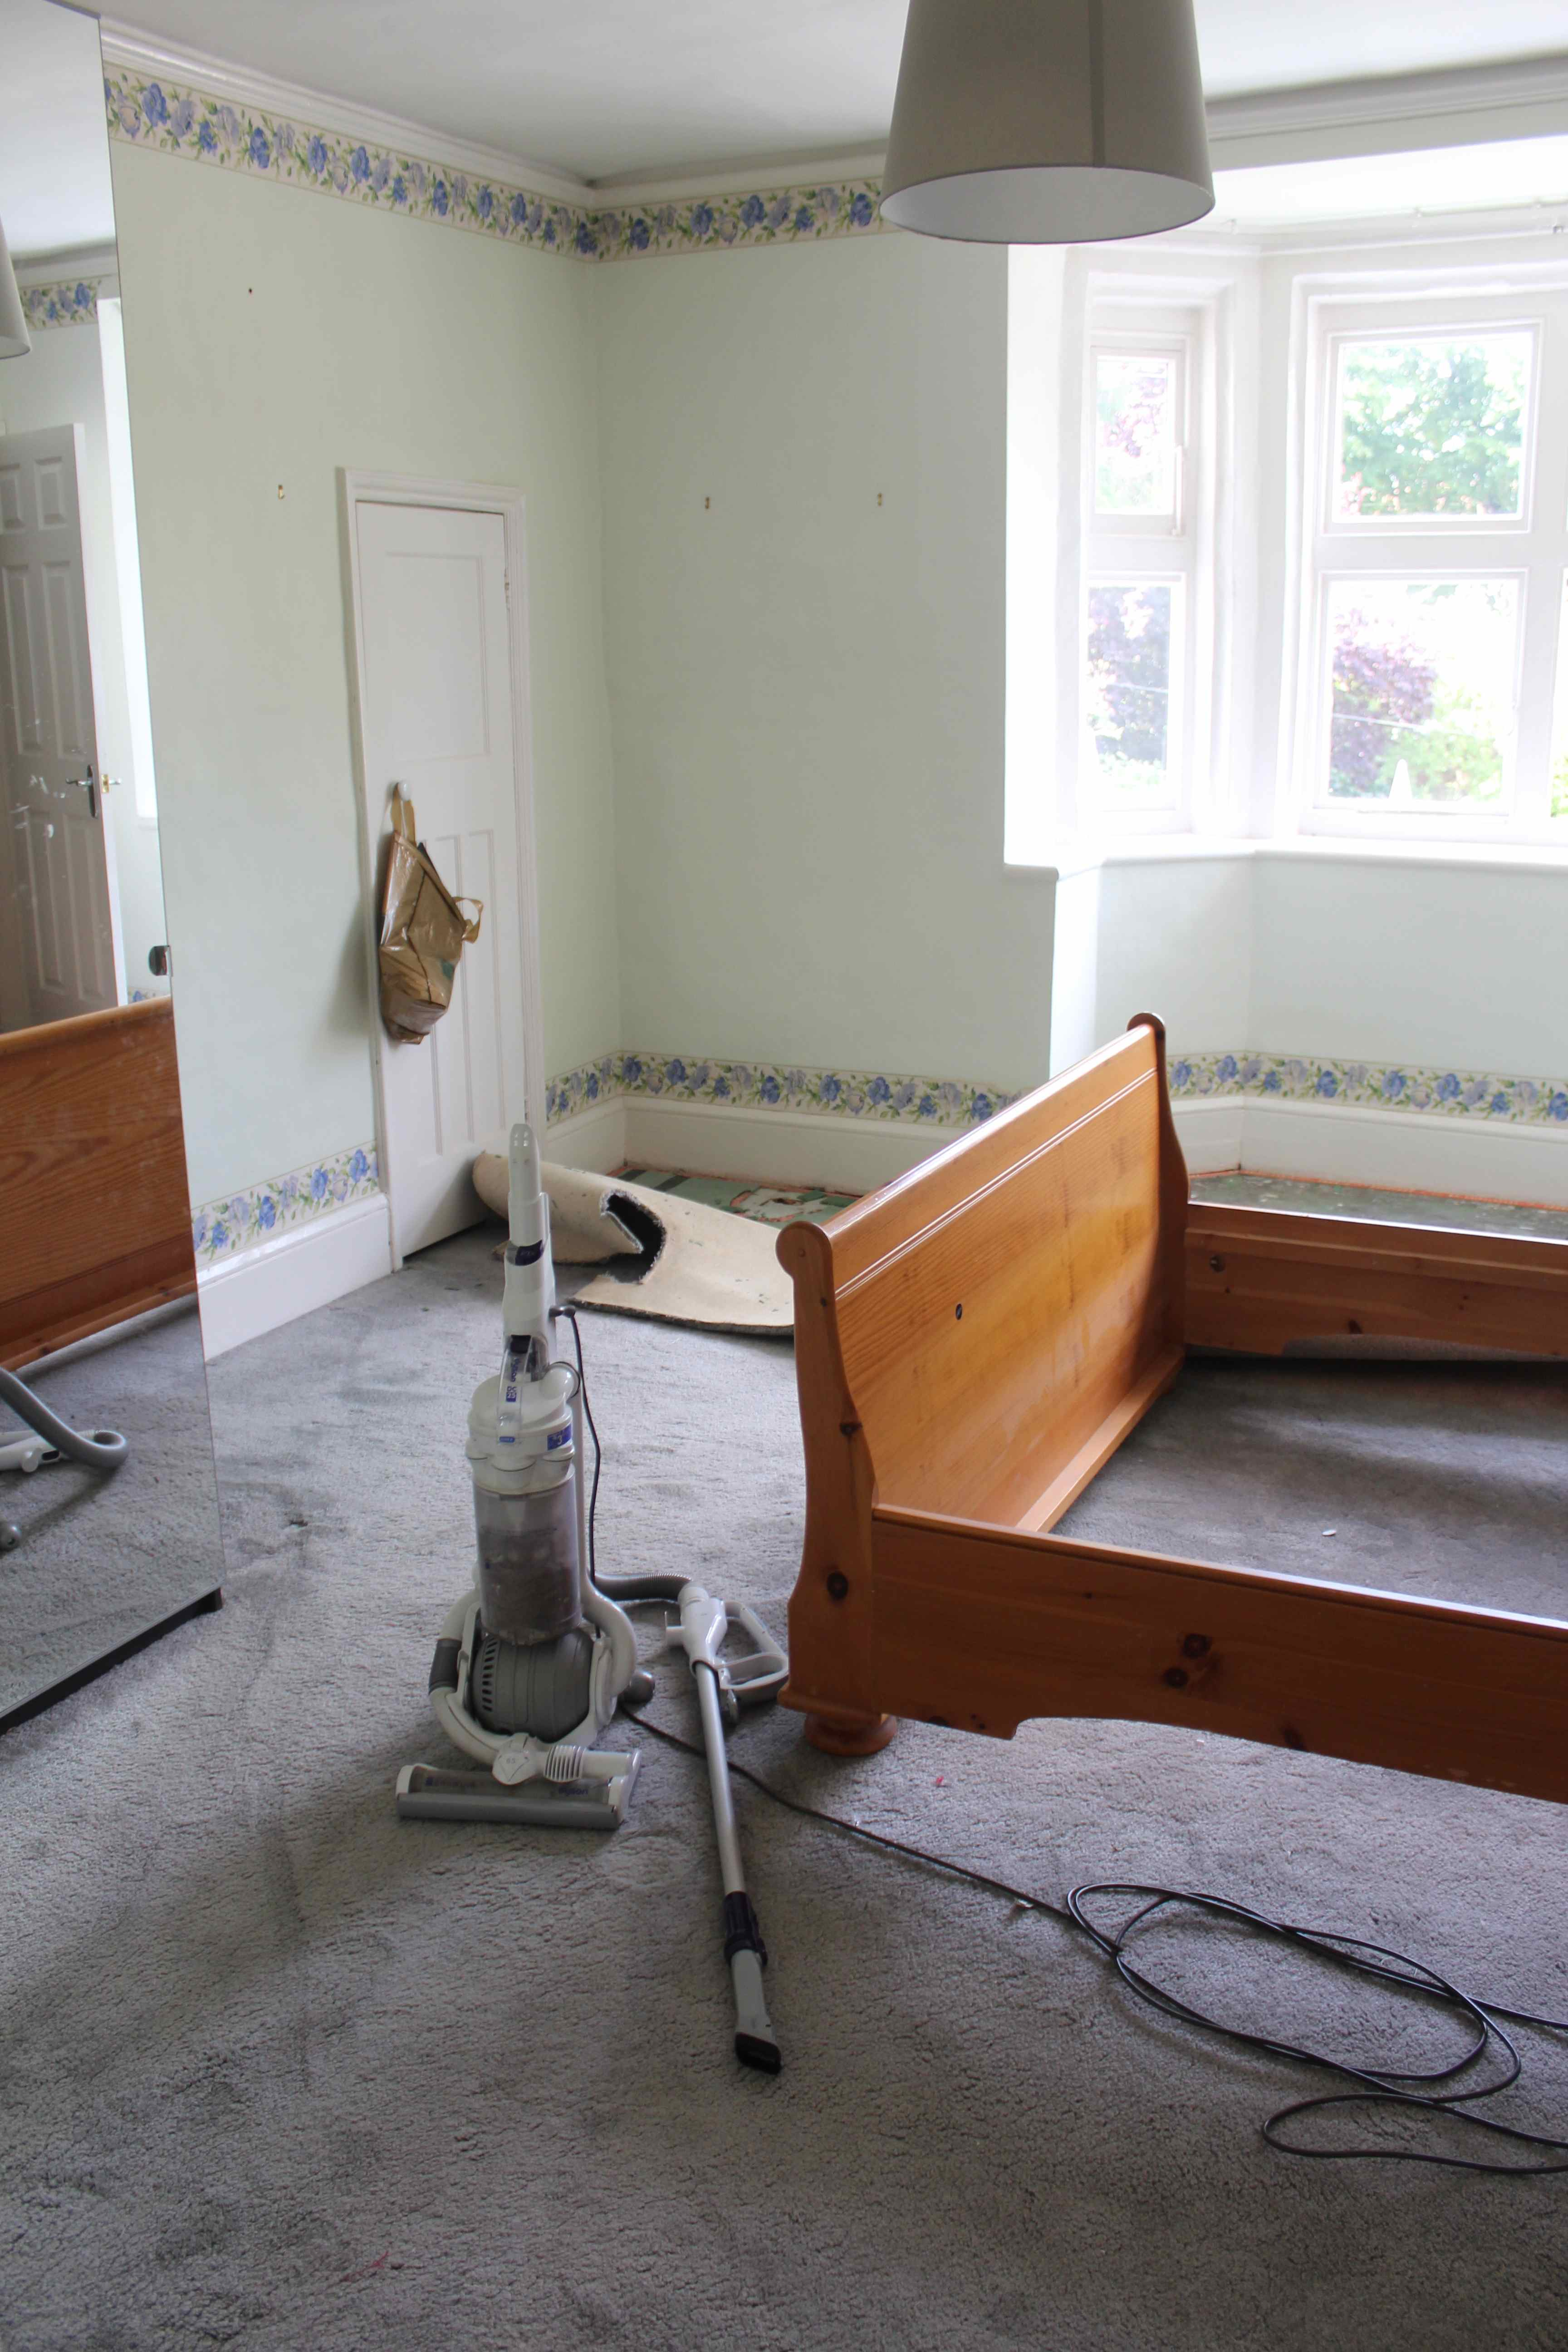 Tired Decor, Floral Borders, Exposed Pipework And The Oldest Piece Of  Furniture I Own U2013 A Bed From My Student Days. It Also Became A Dumping  Ground For The ...